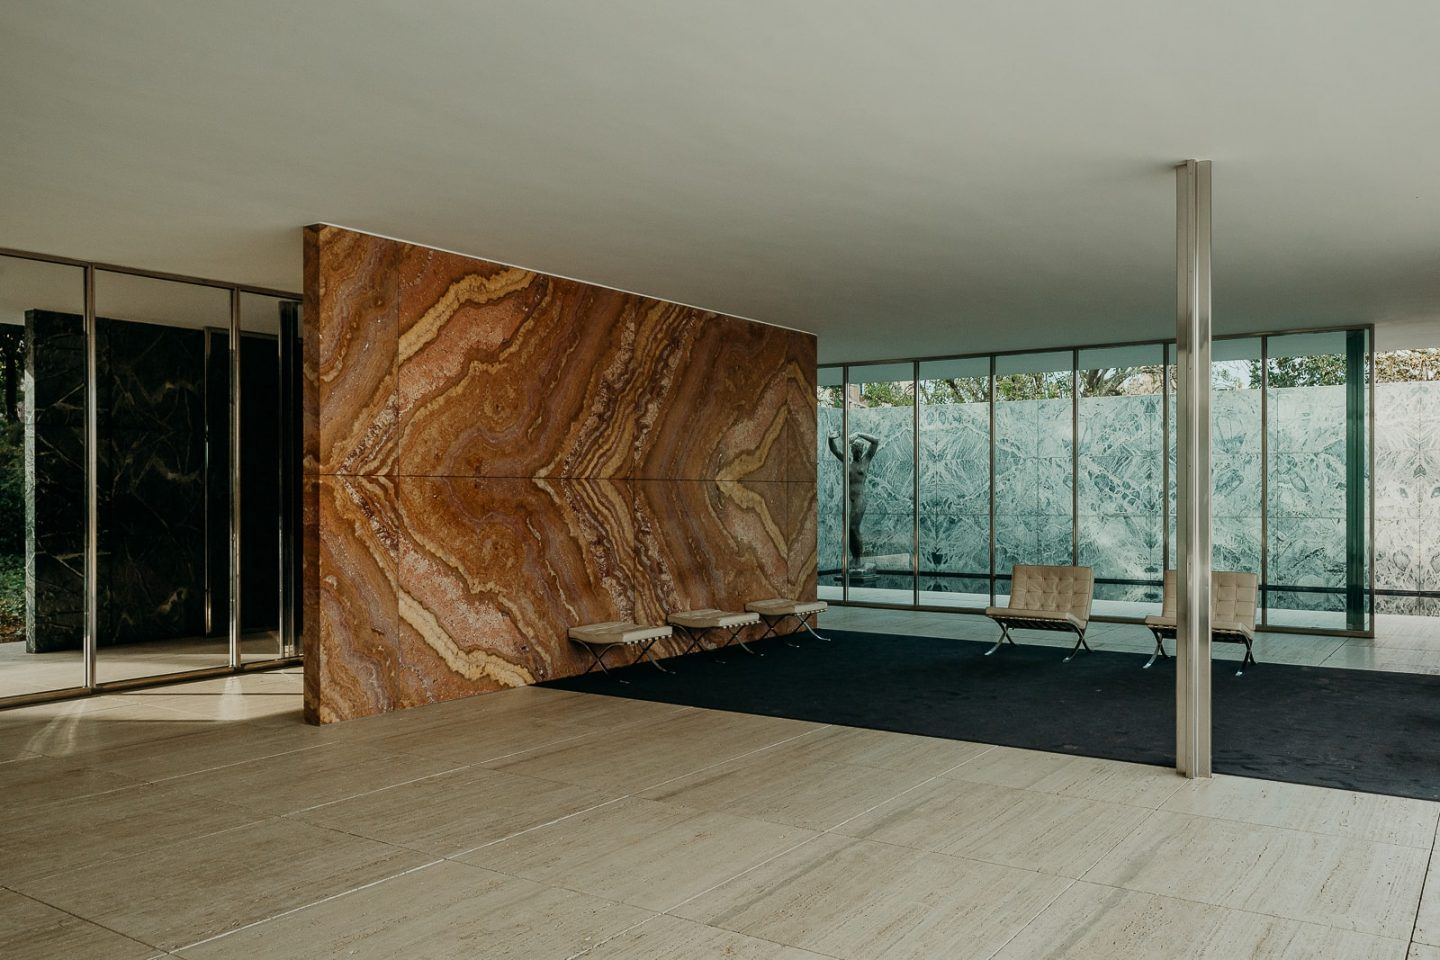 IGNANT-Architecture-Barcelona-Pavilion-Ludwig-Mies-Van-Der-Rohe-Maciej-Jezyk-07